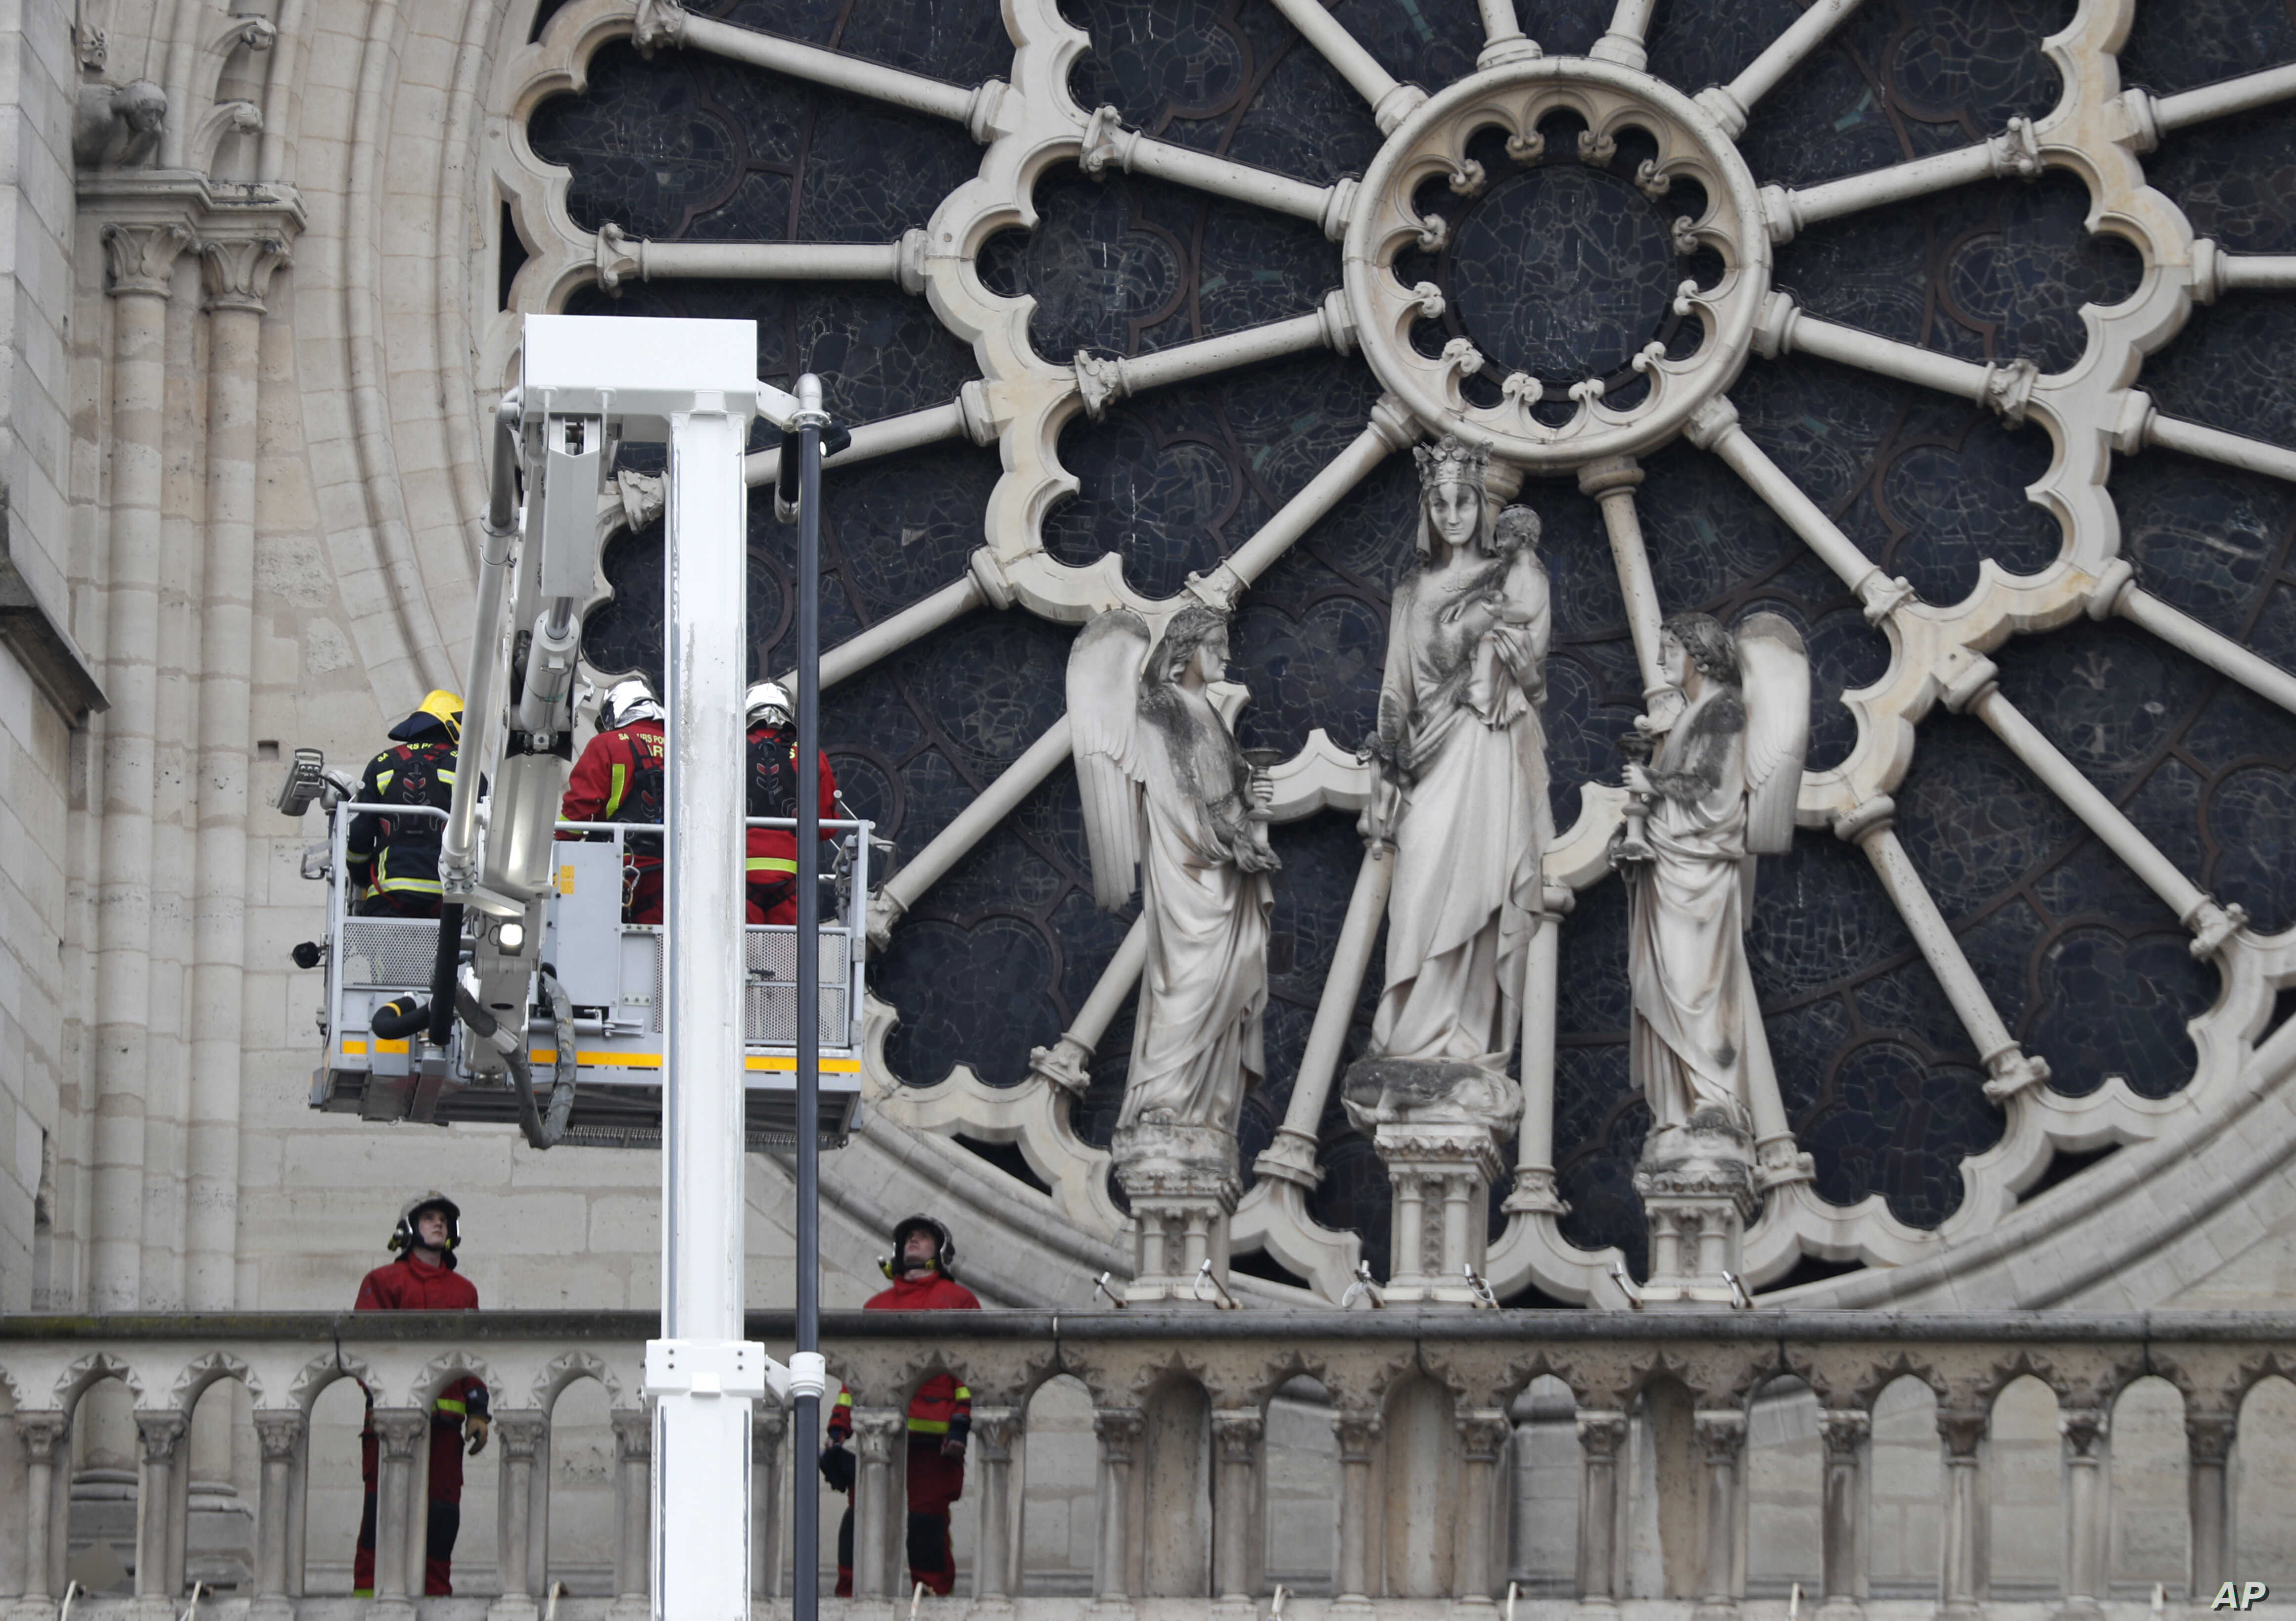 Firefighters work near the rose window of Notre Dame cathedral, Apr. 16, 2019 in Paris.